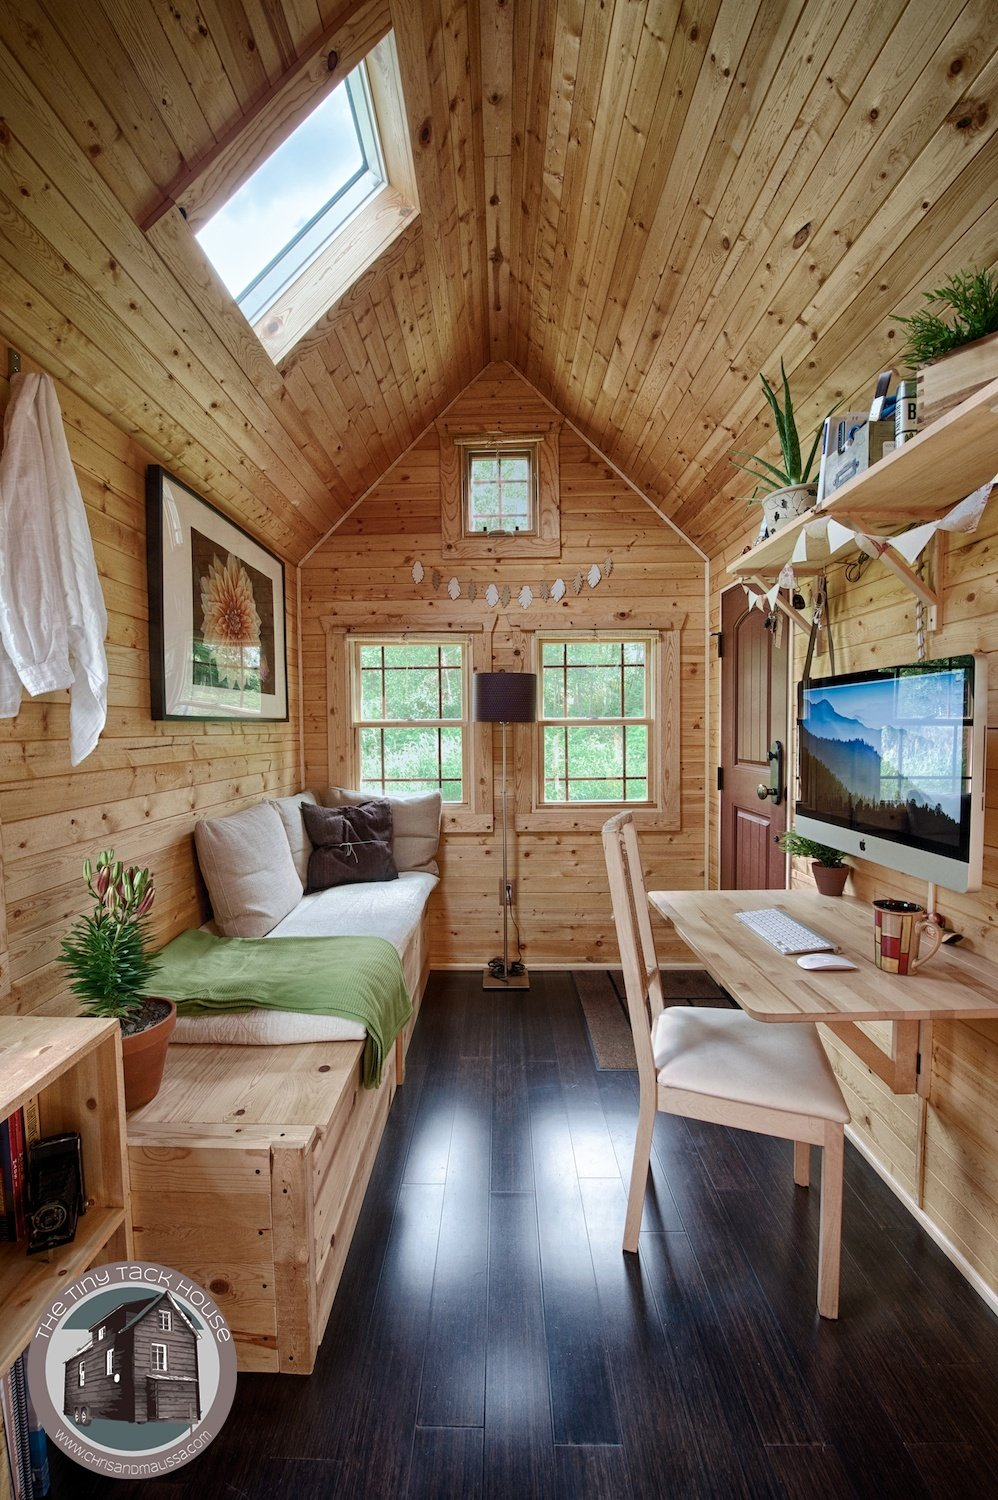 Interior Small House Interior Design: 16 Tiny Houses You Wish You Could Live In